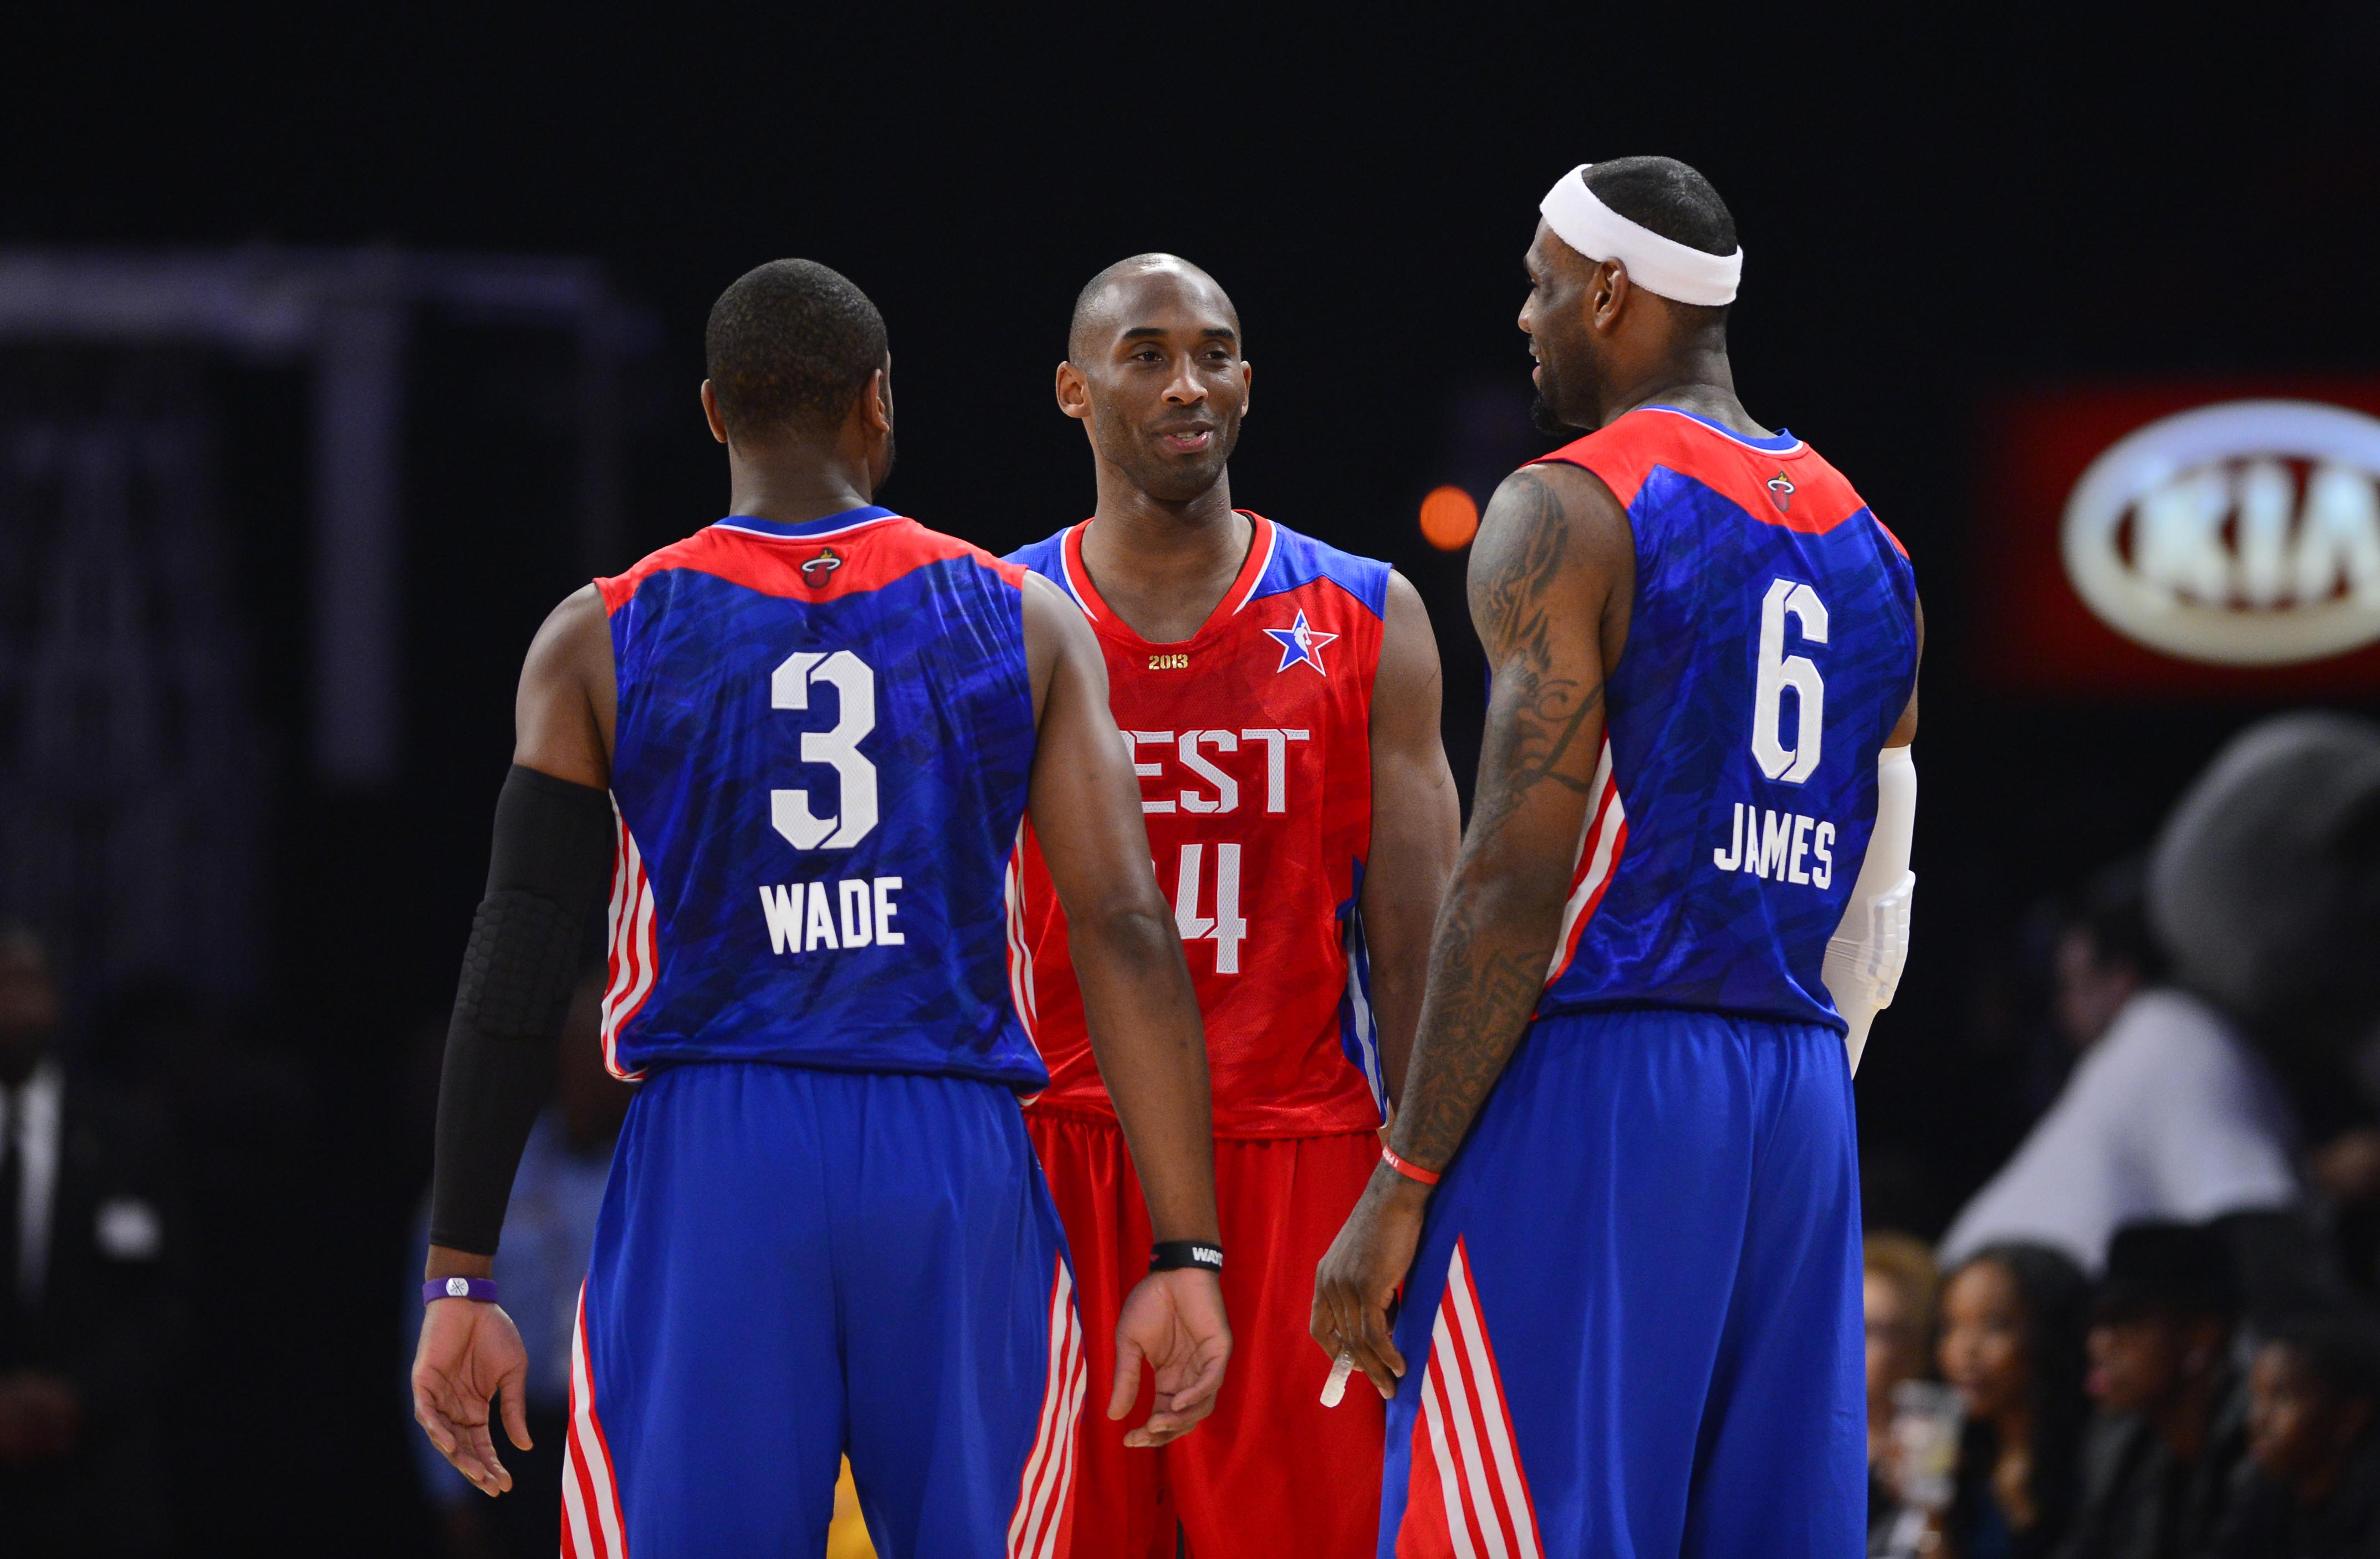 NBA all star game photo & Images